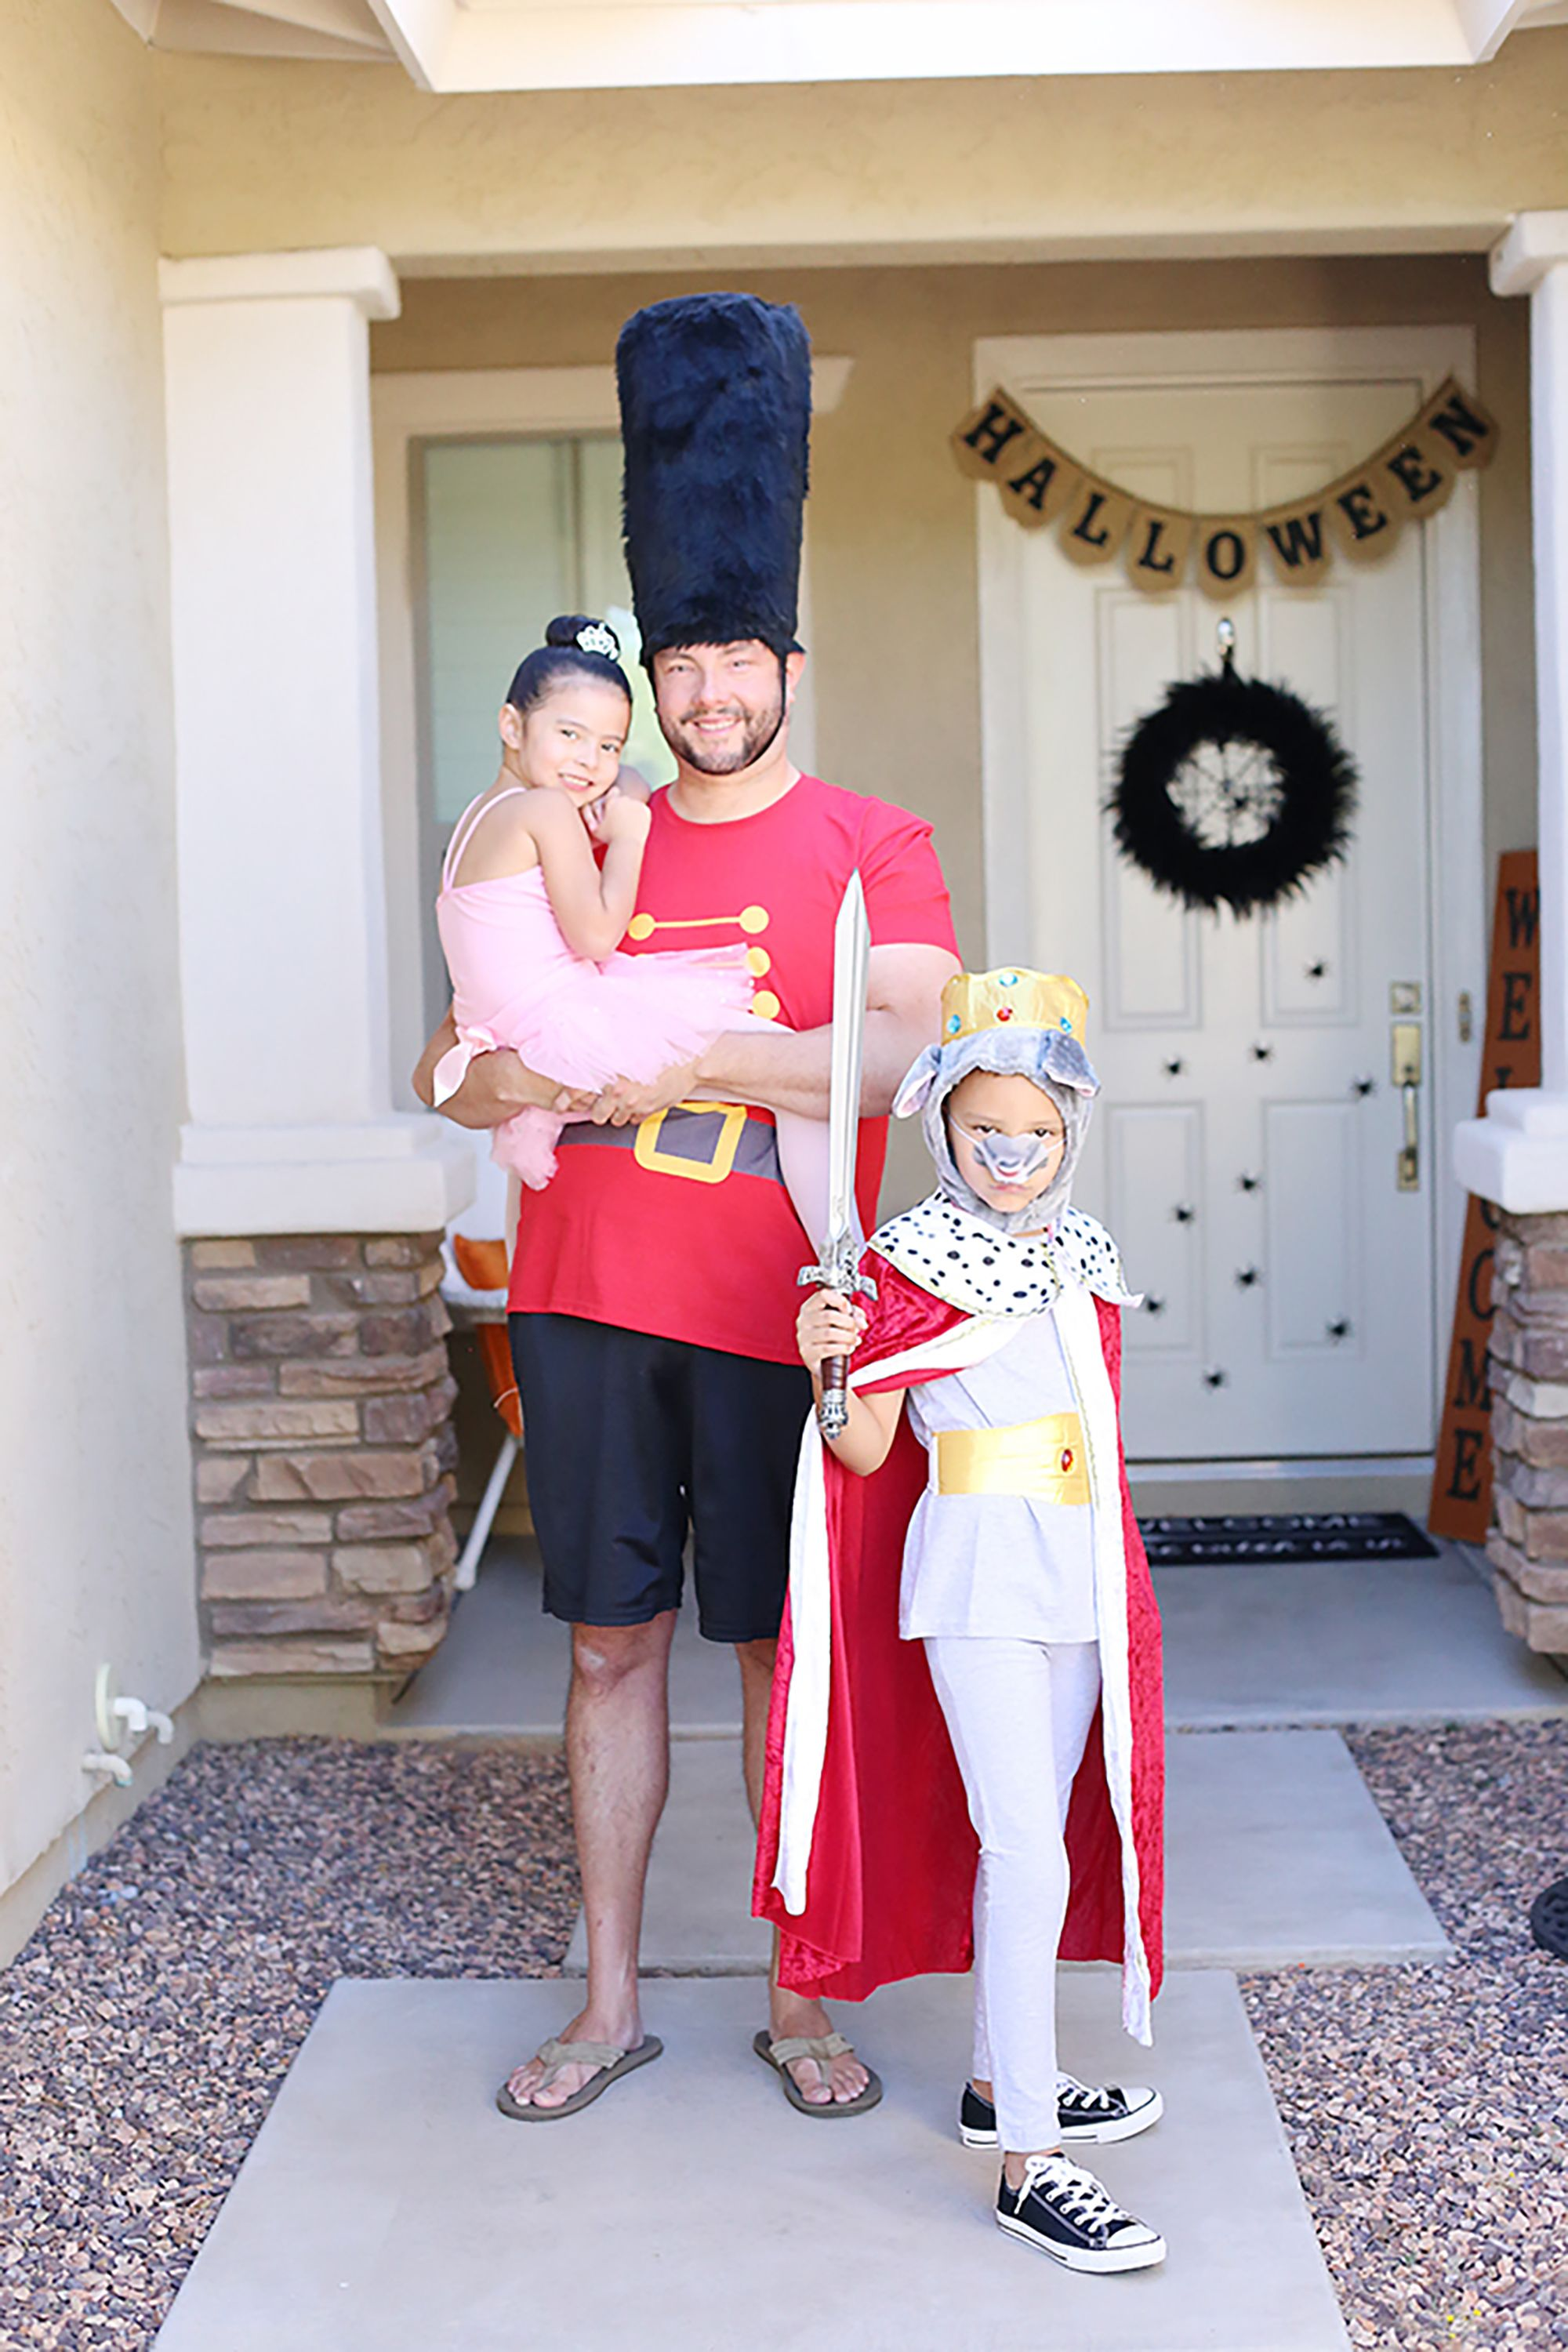 e4c69915d 40 Best Family Halloween Costumes 2018 - Cute Ideas for Themed Costumes for  Families